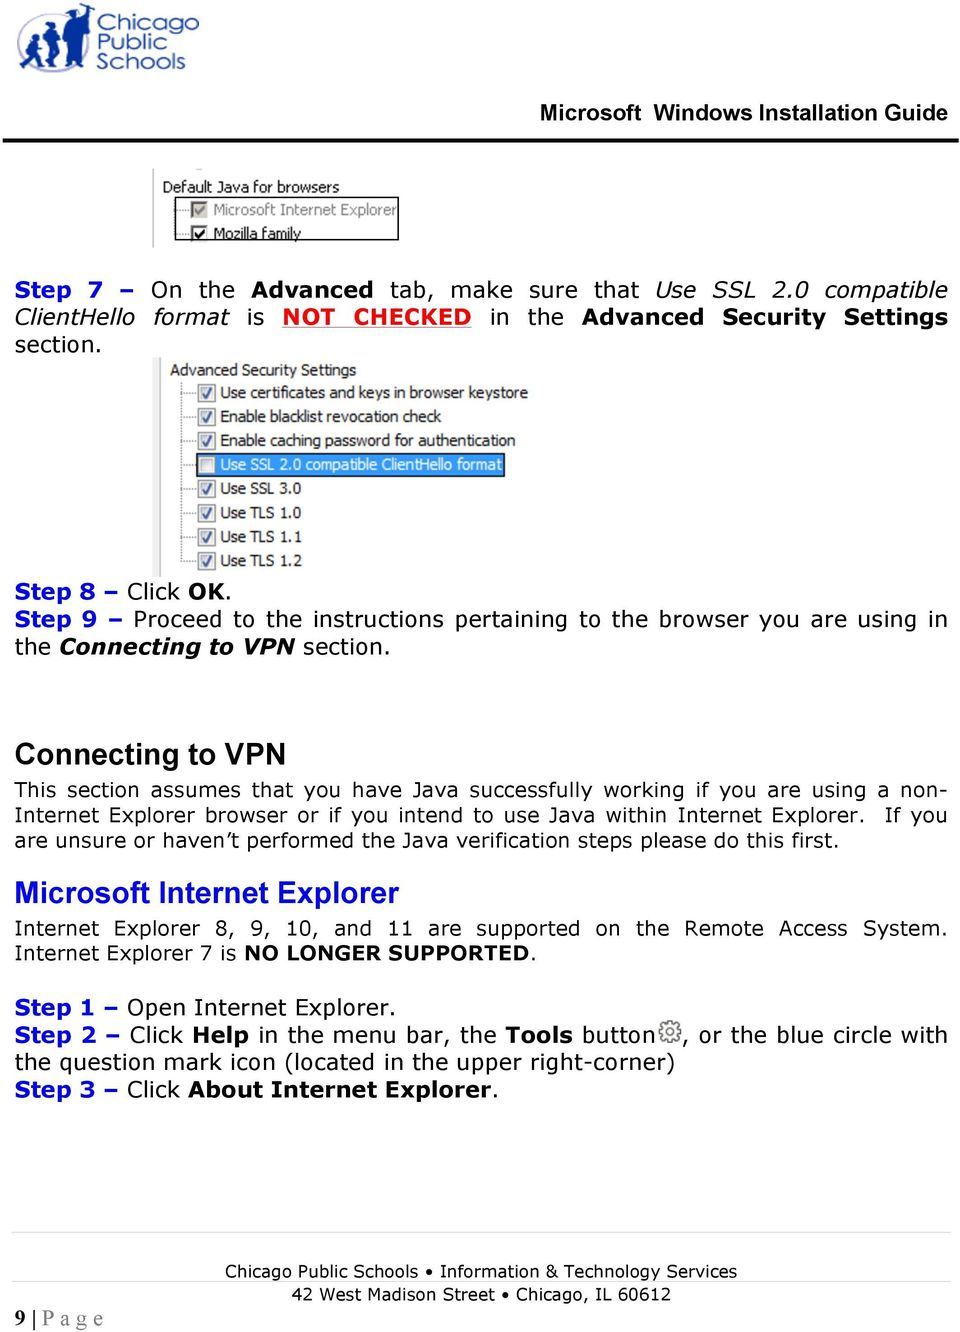 Remote Access Services Microsoft Windows - Installation Guide - PDF